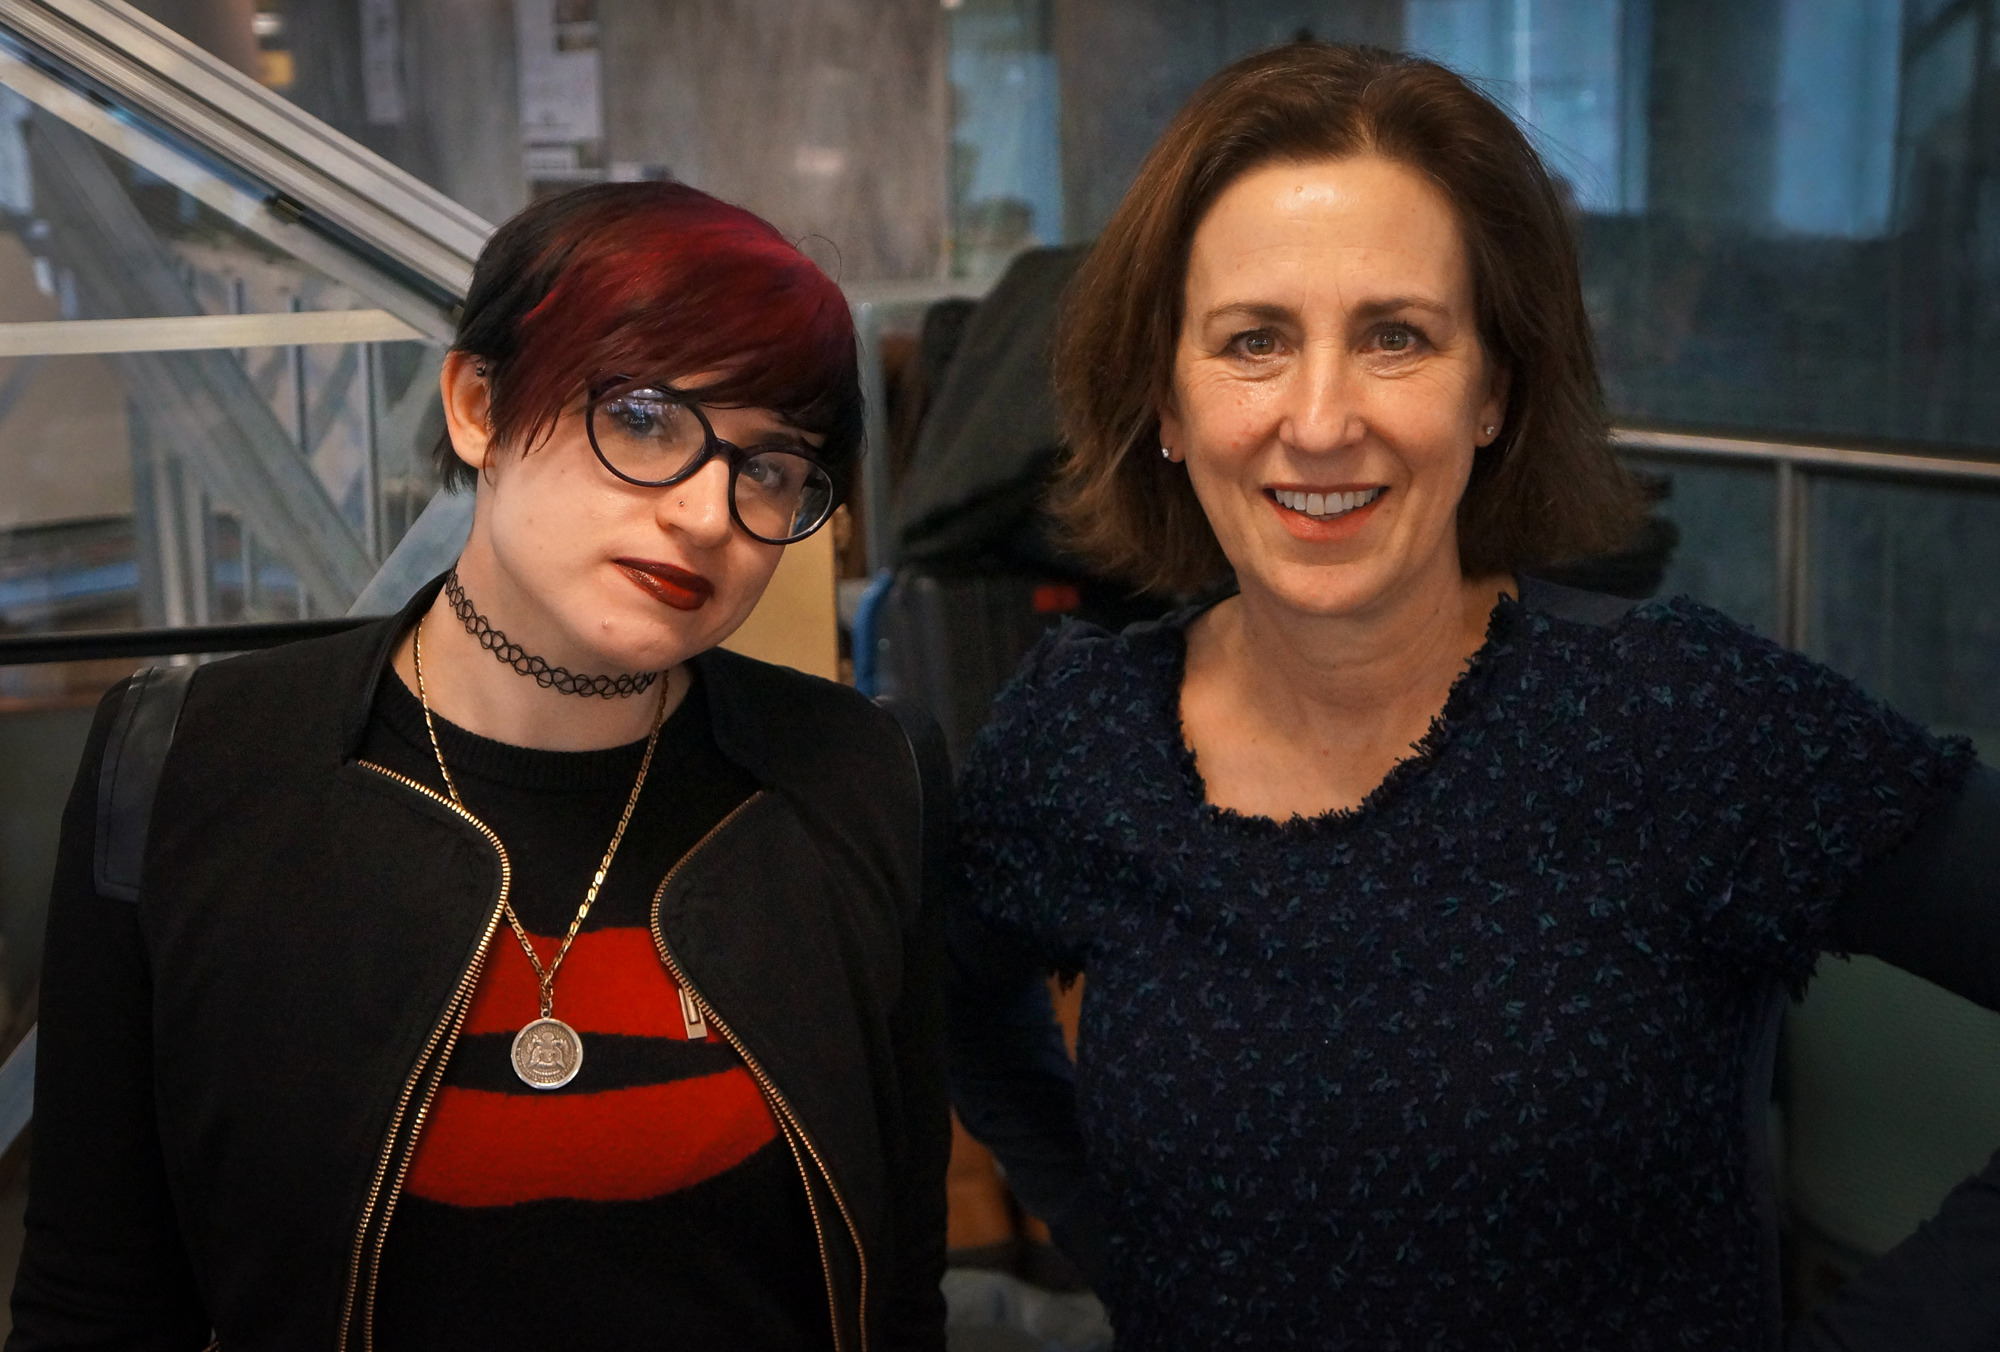 Laurie Penny (left) and Kirsty Wark in Blurred Lines: The New Battle of the Sexes